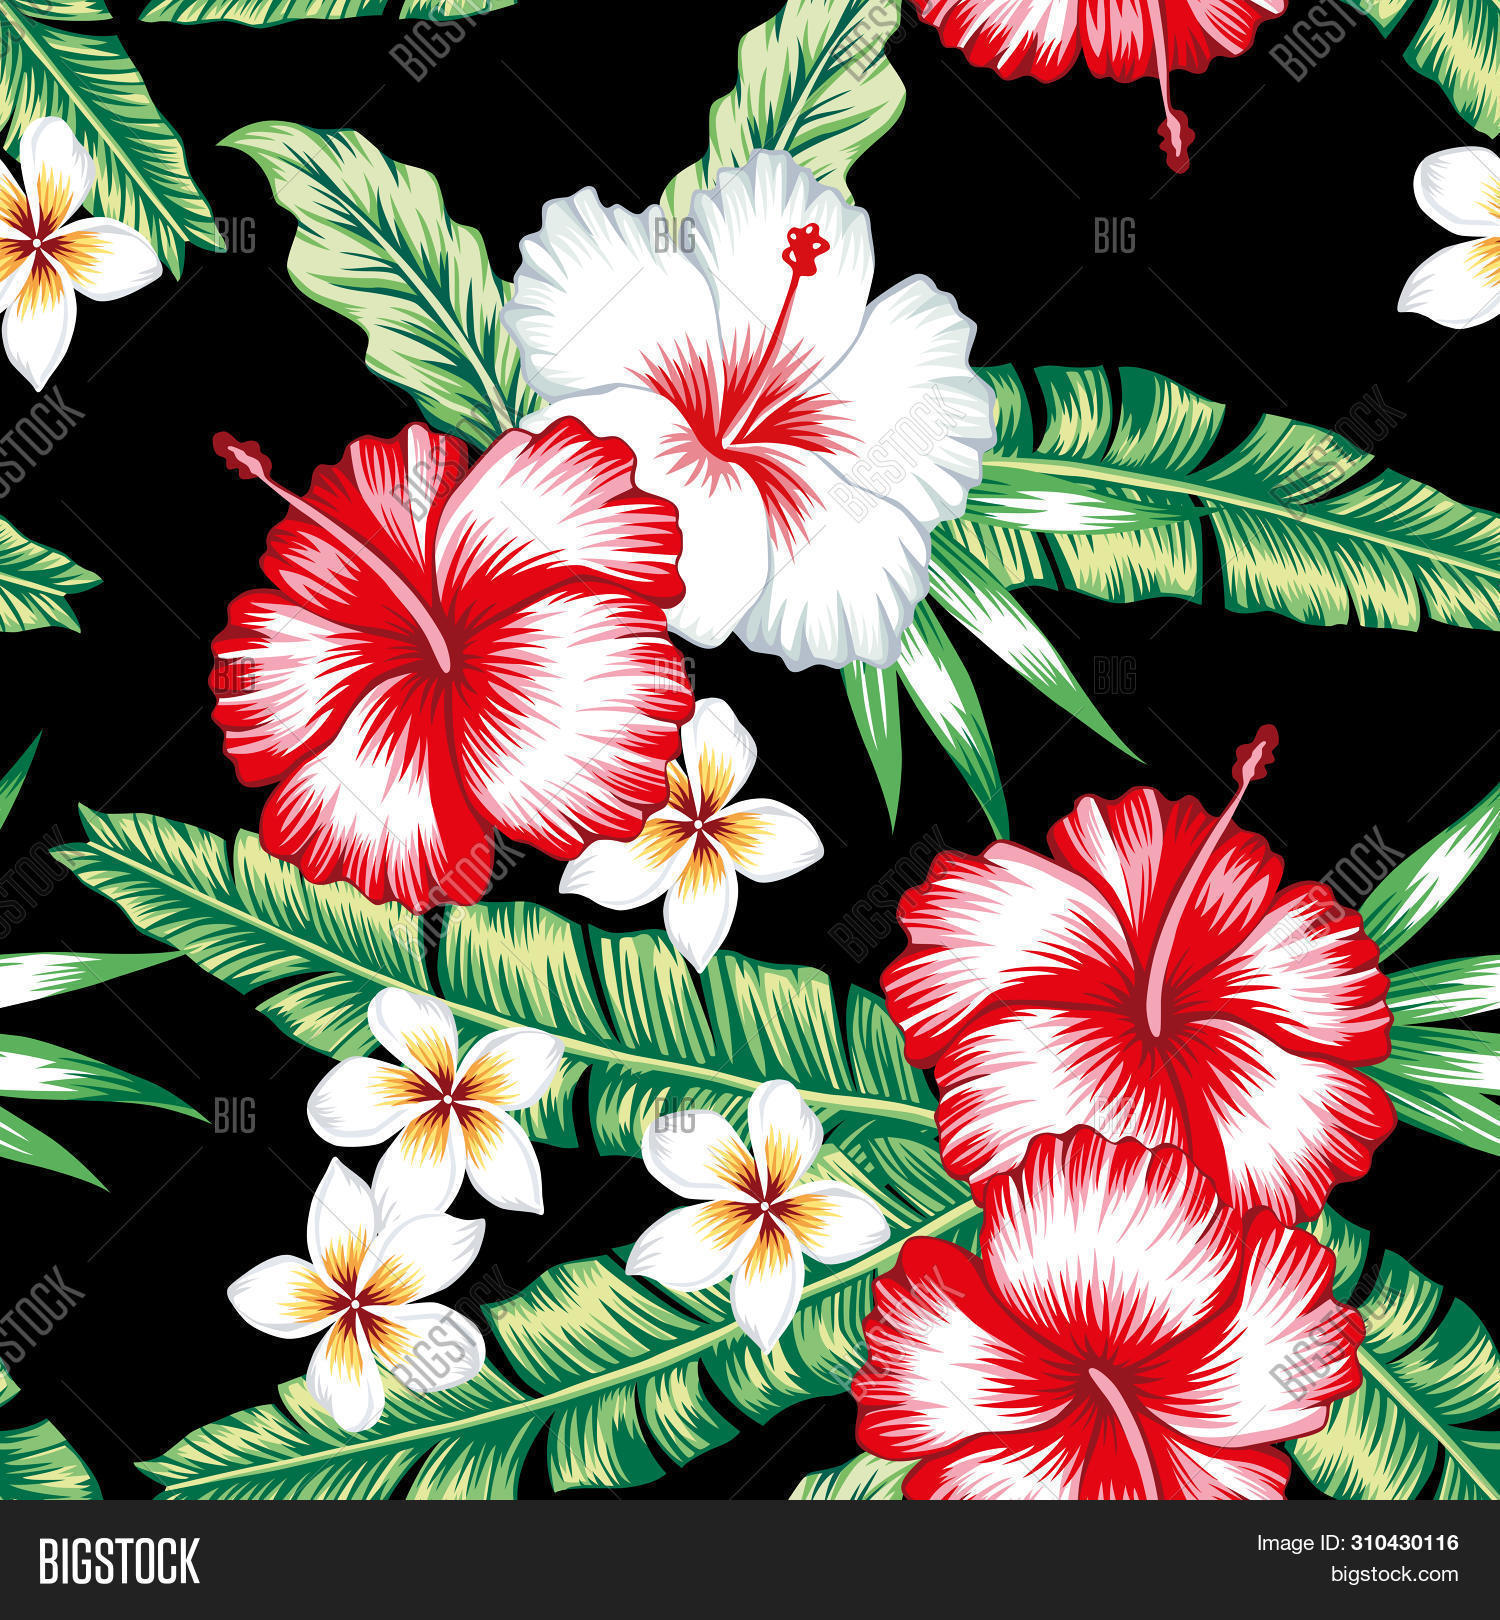 Tropic Summer Floral Image Photo Free Trial Bigstock